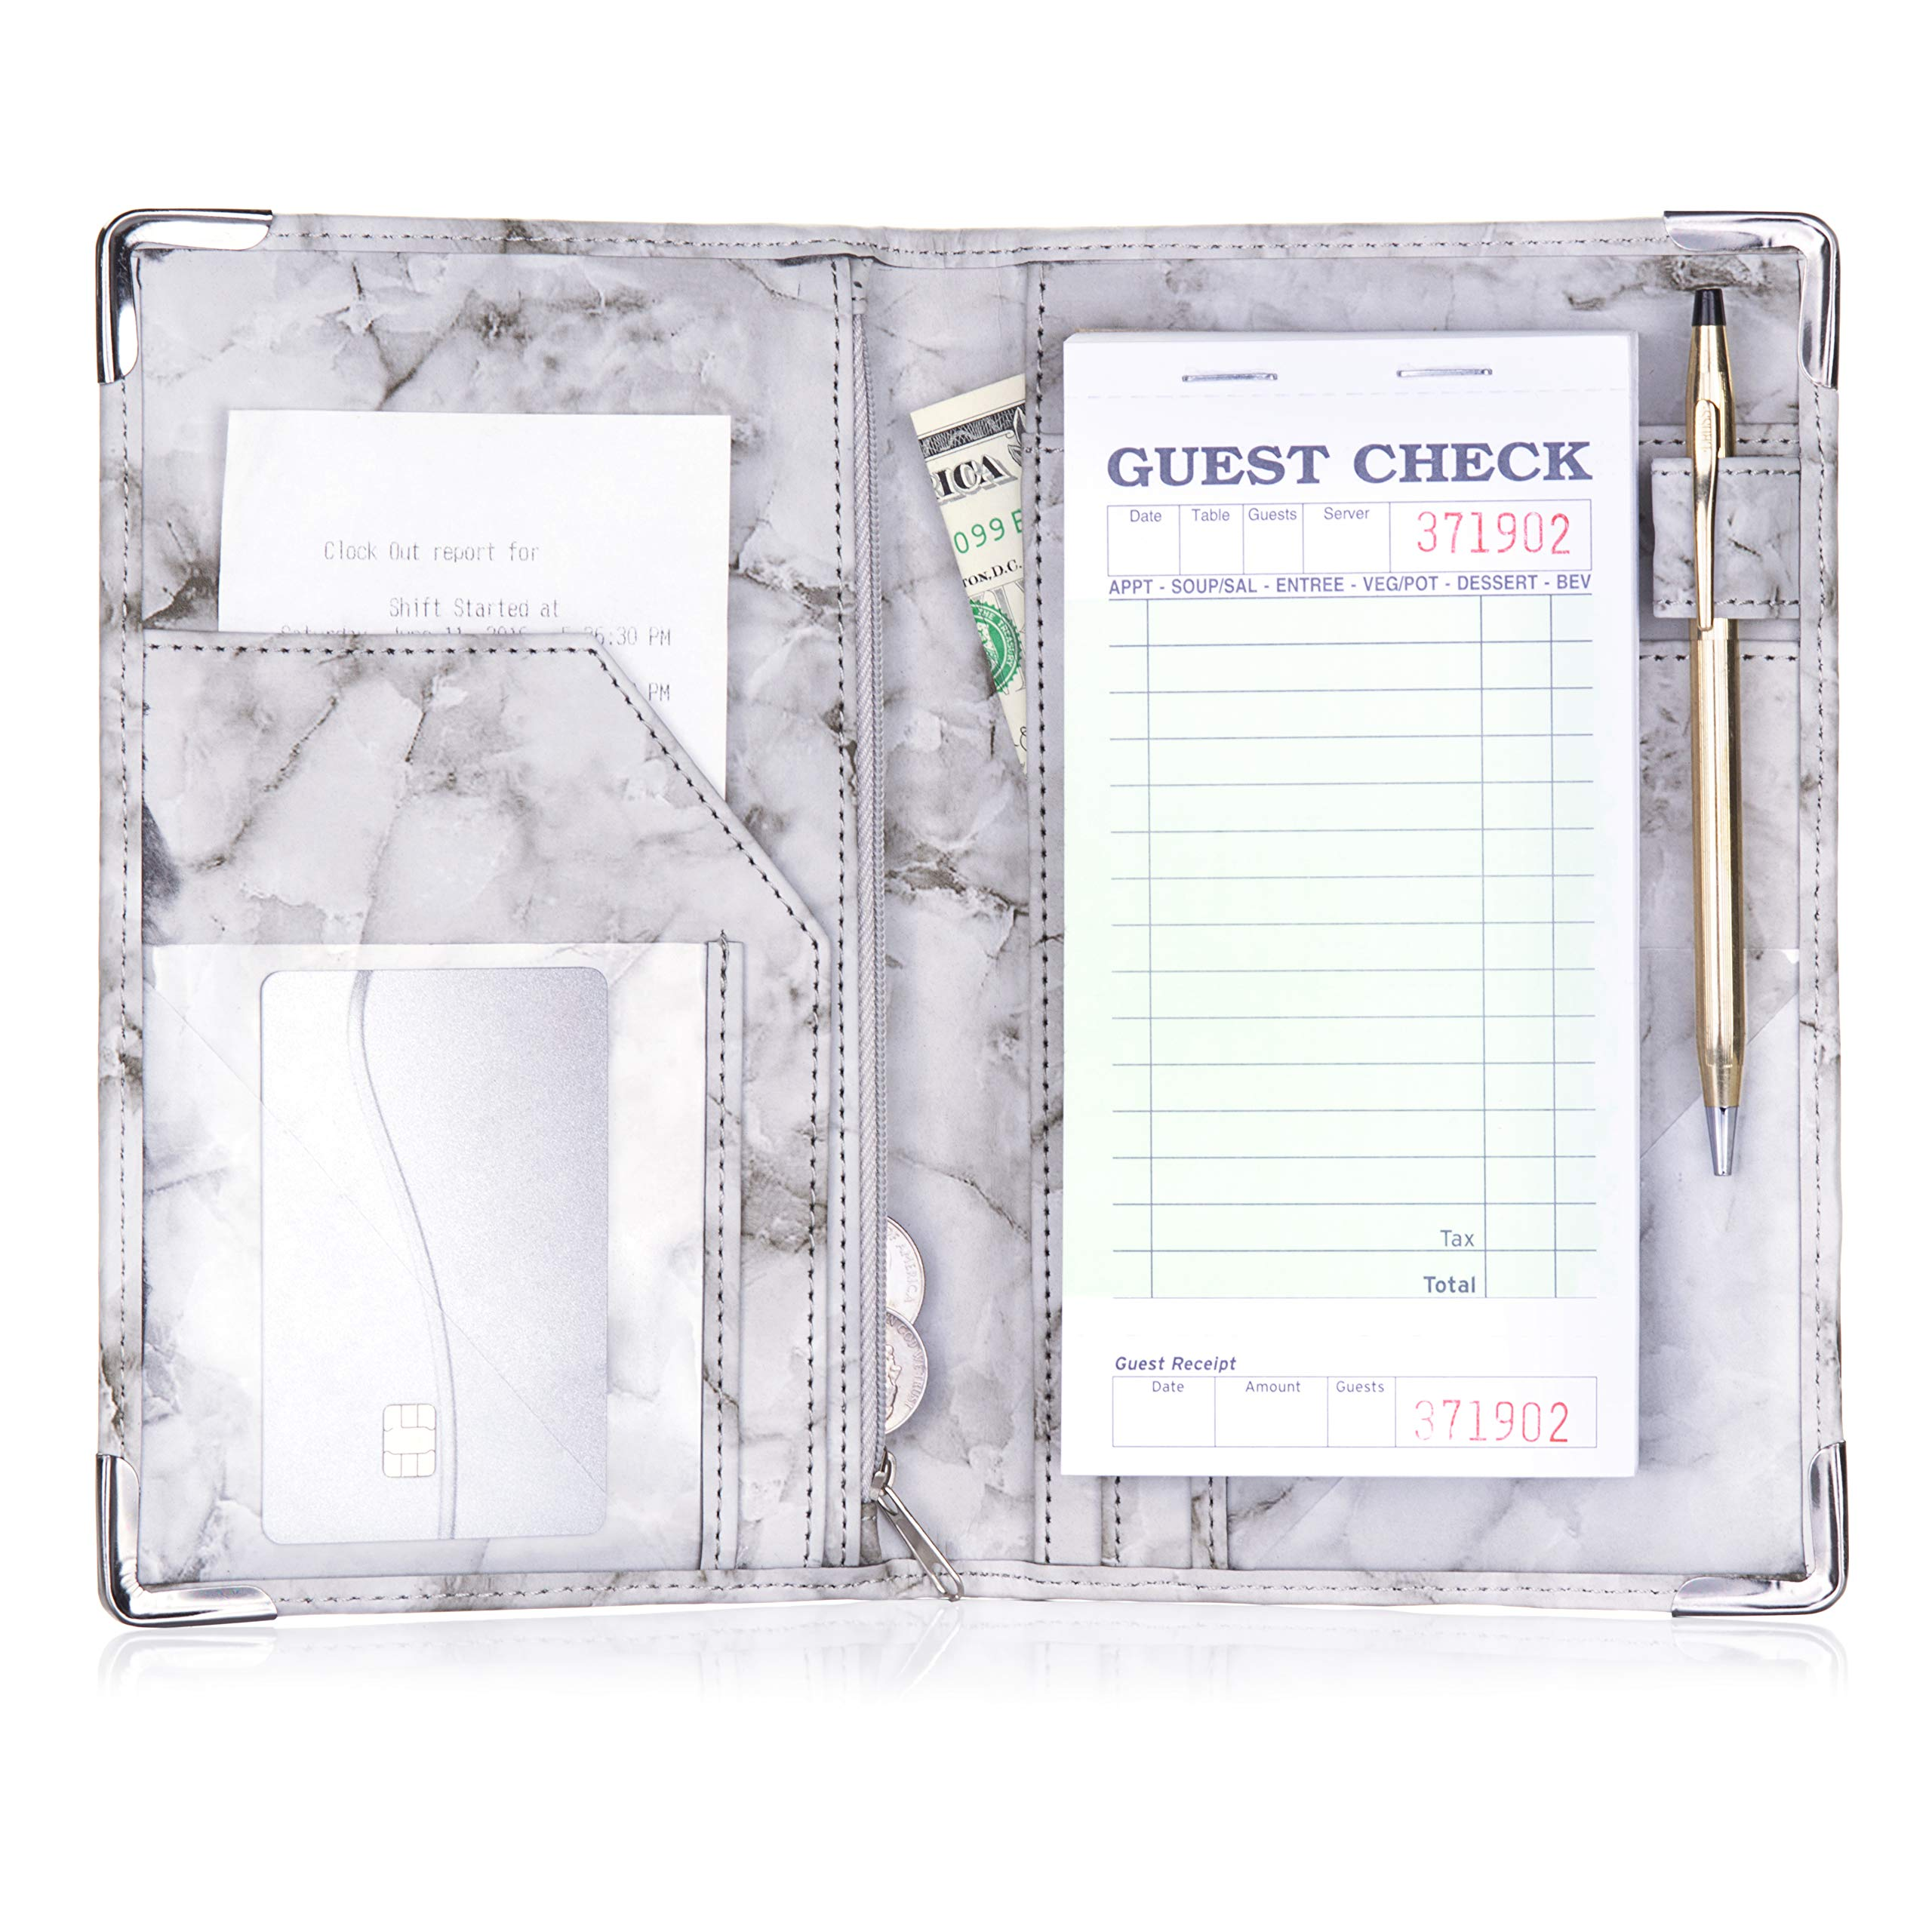 Sonic Server Marble Style Deluxe Server Book for Restaurant Waiter Waitress Waitstaff   Black Marble   9 Pockets includes Zipper Pouch with Pen Holder   Holds Guest Checks, Money, Order Pad